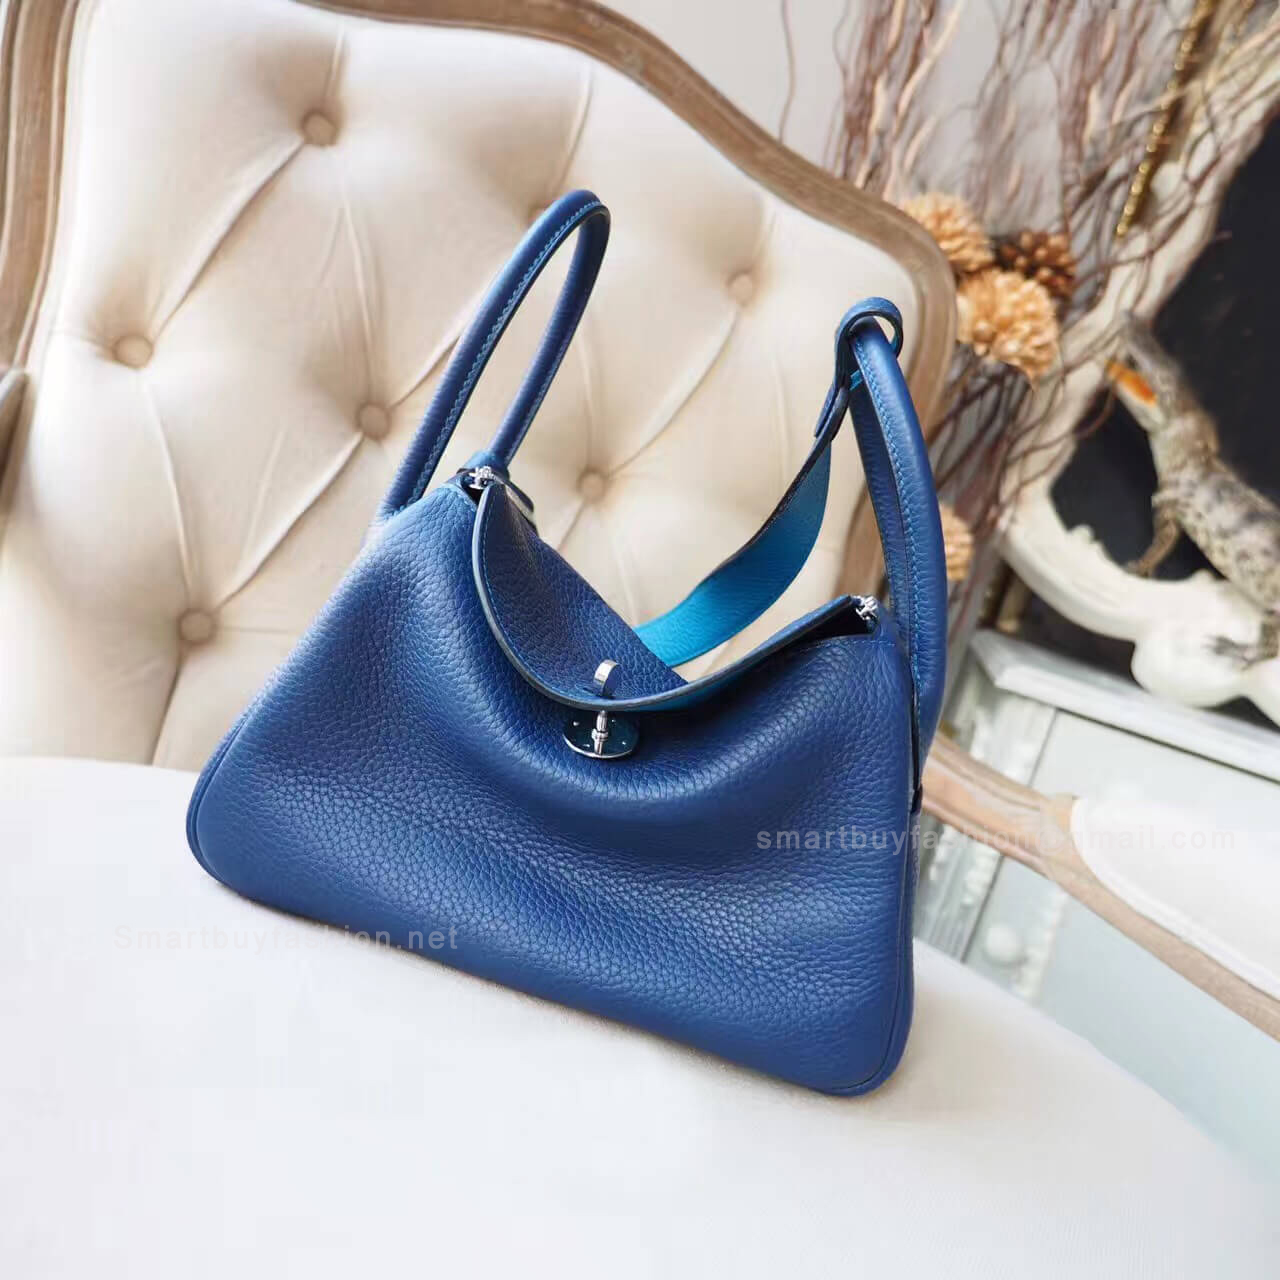 9cd3d94930bf Hermes Lindy 26 Bag in Bicolored ck73 Blue Saphir Clemence PHW